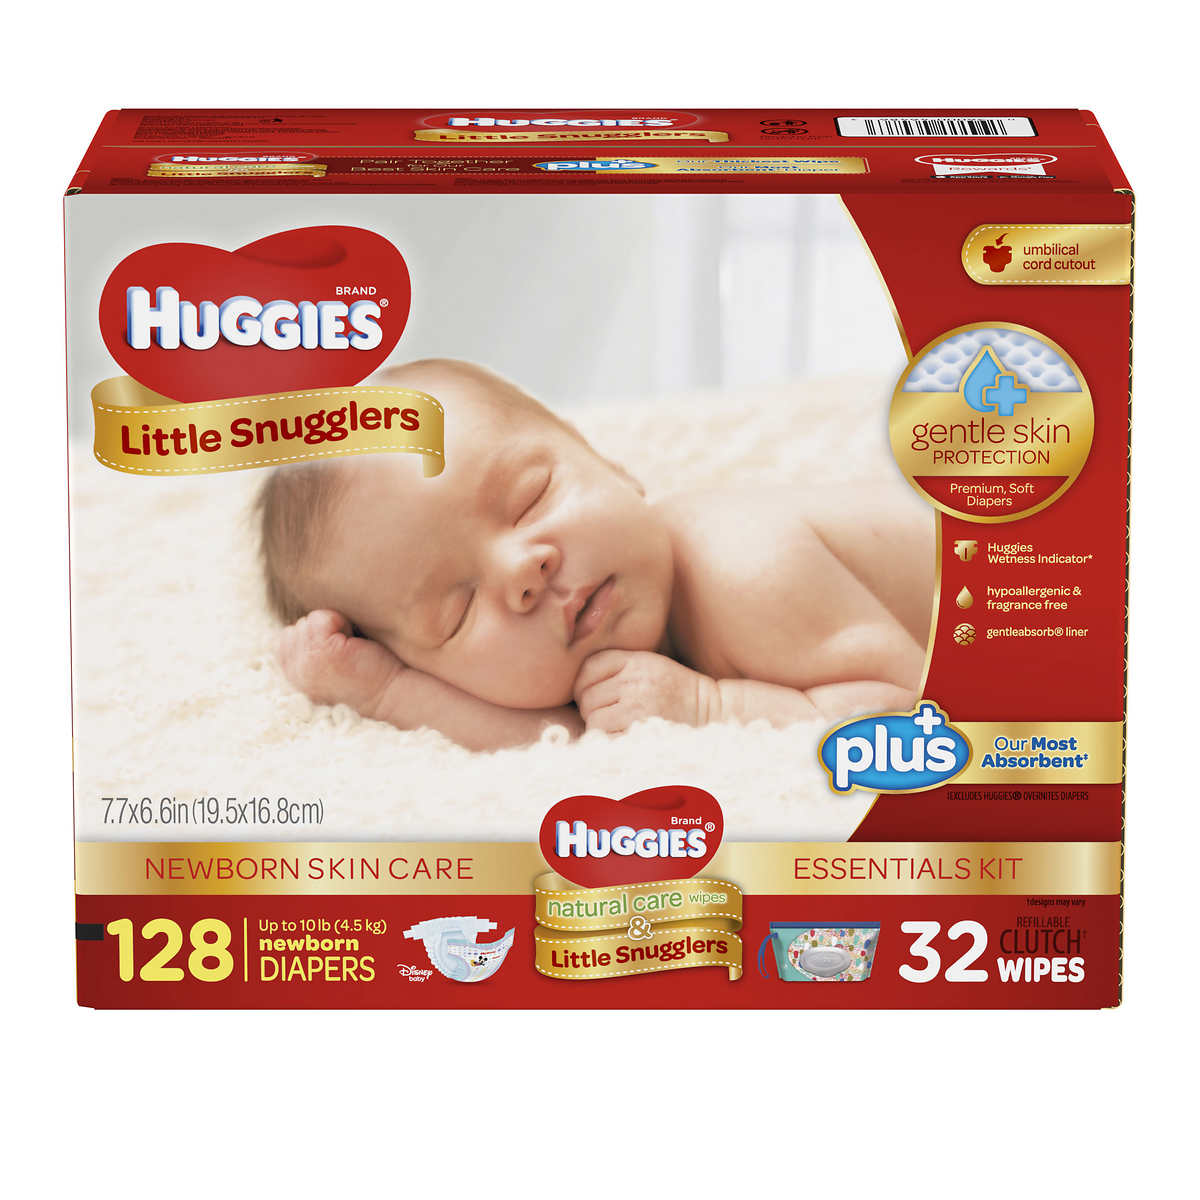 diapers wipes huggies little snugglers plus diapers new born skin care essentials kit